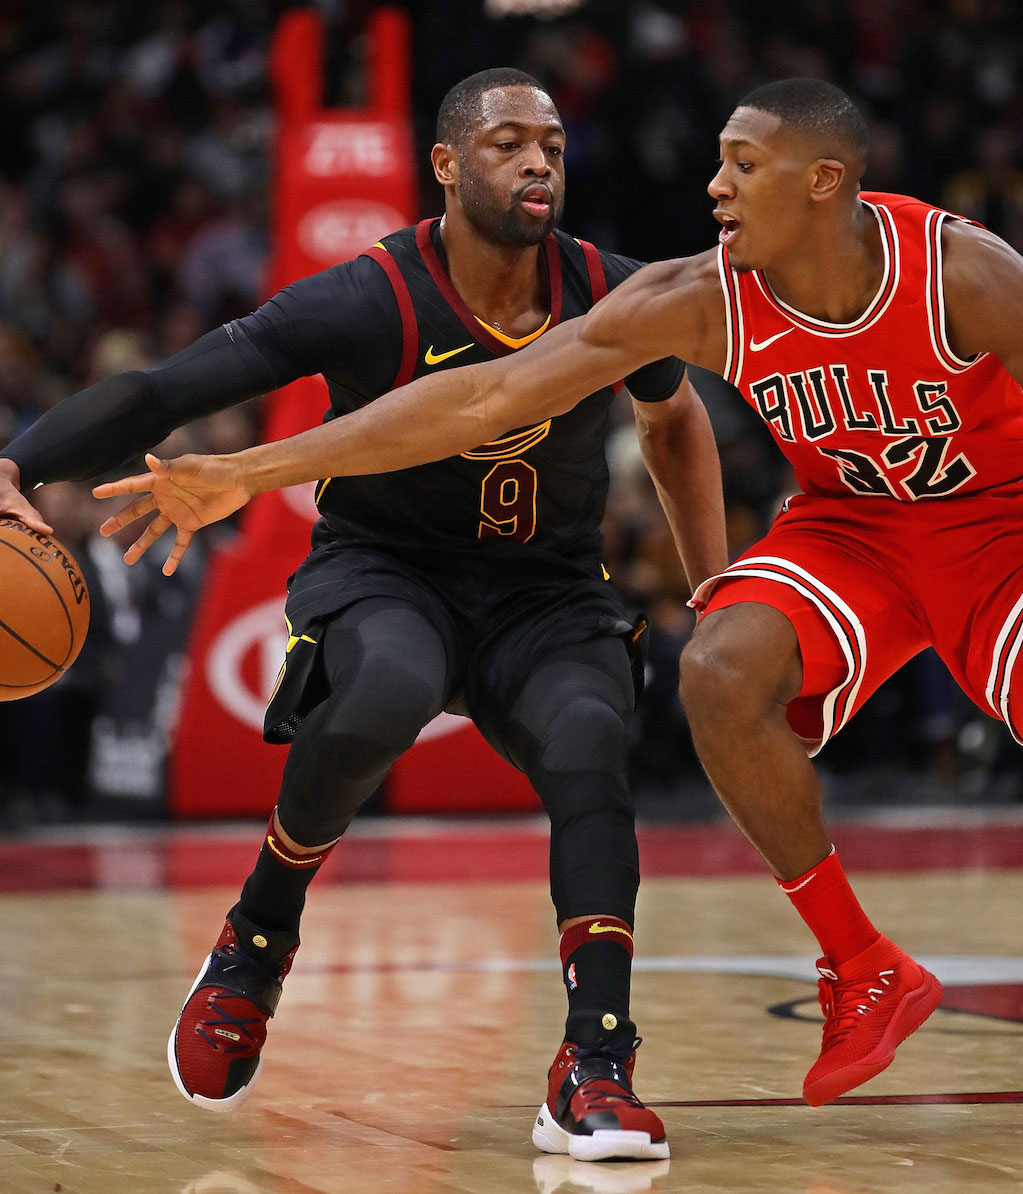 Kris Dunn #32 of the Chicago Bulls tries to knock the ball away from Dwyane Wade #9 of the Cleveland Cavaliers at the United Center on December 4, 2017 in Chicago, Illinois.